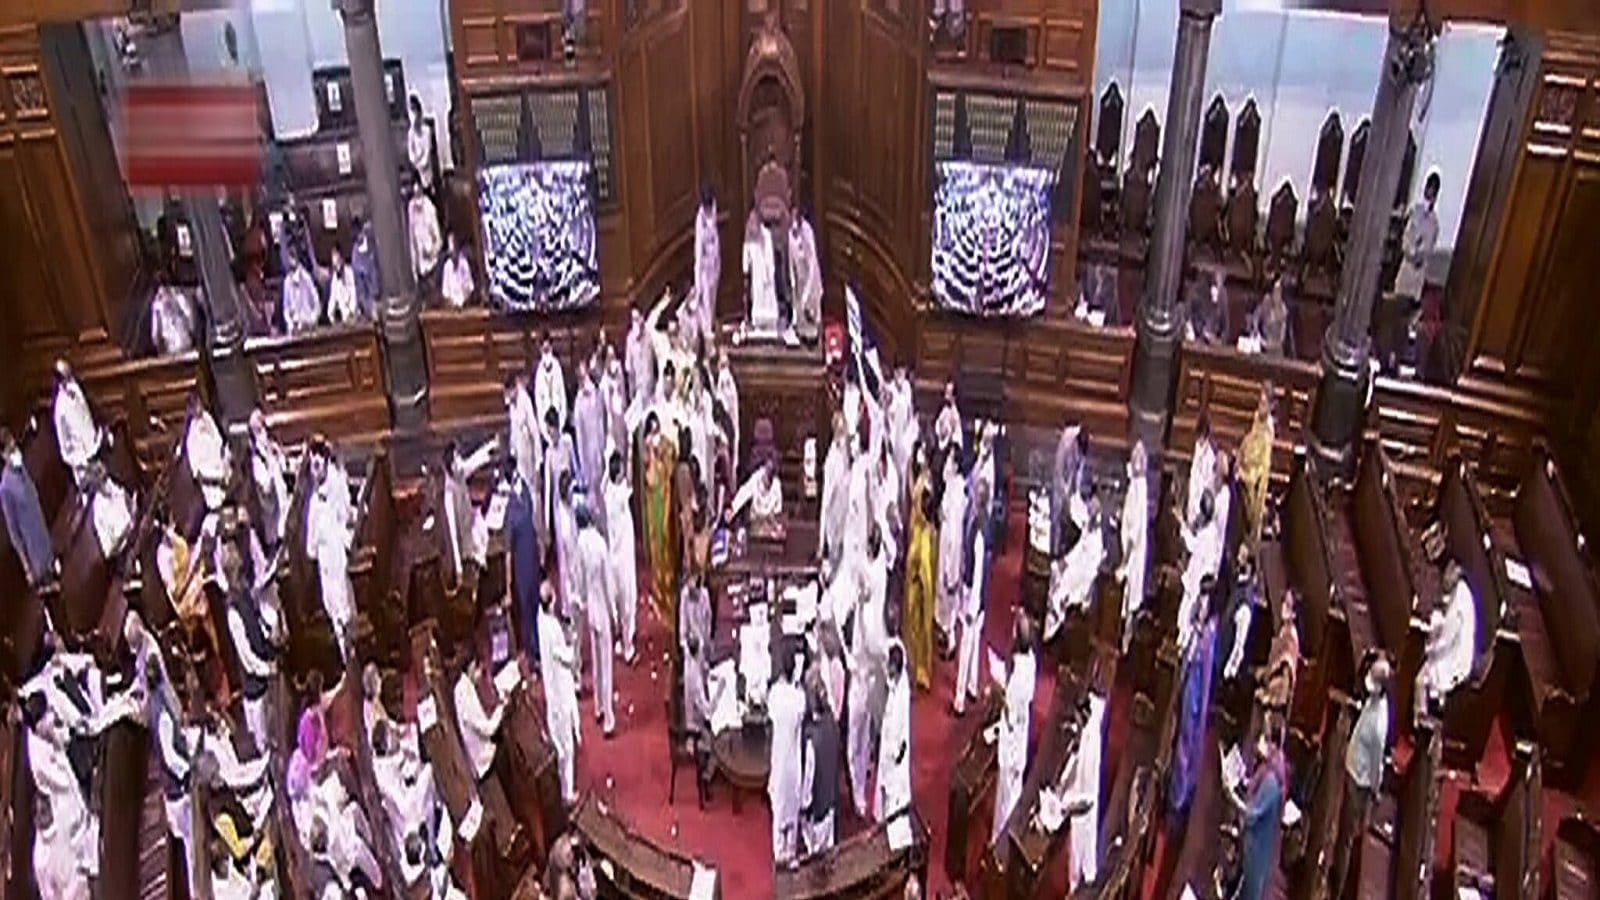 Opposition Damaged Dignity of Parliament, Says BJP After Ruckus in Lok Sabha